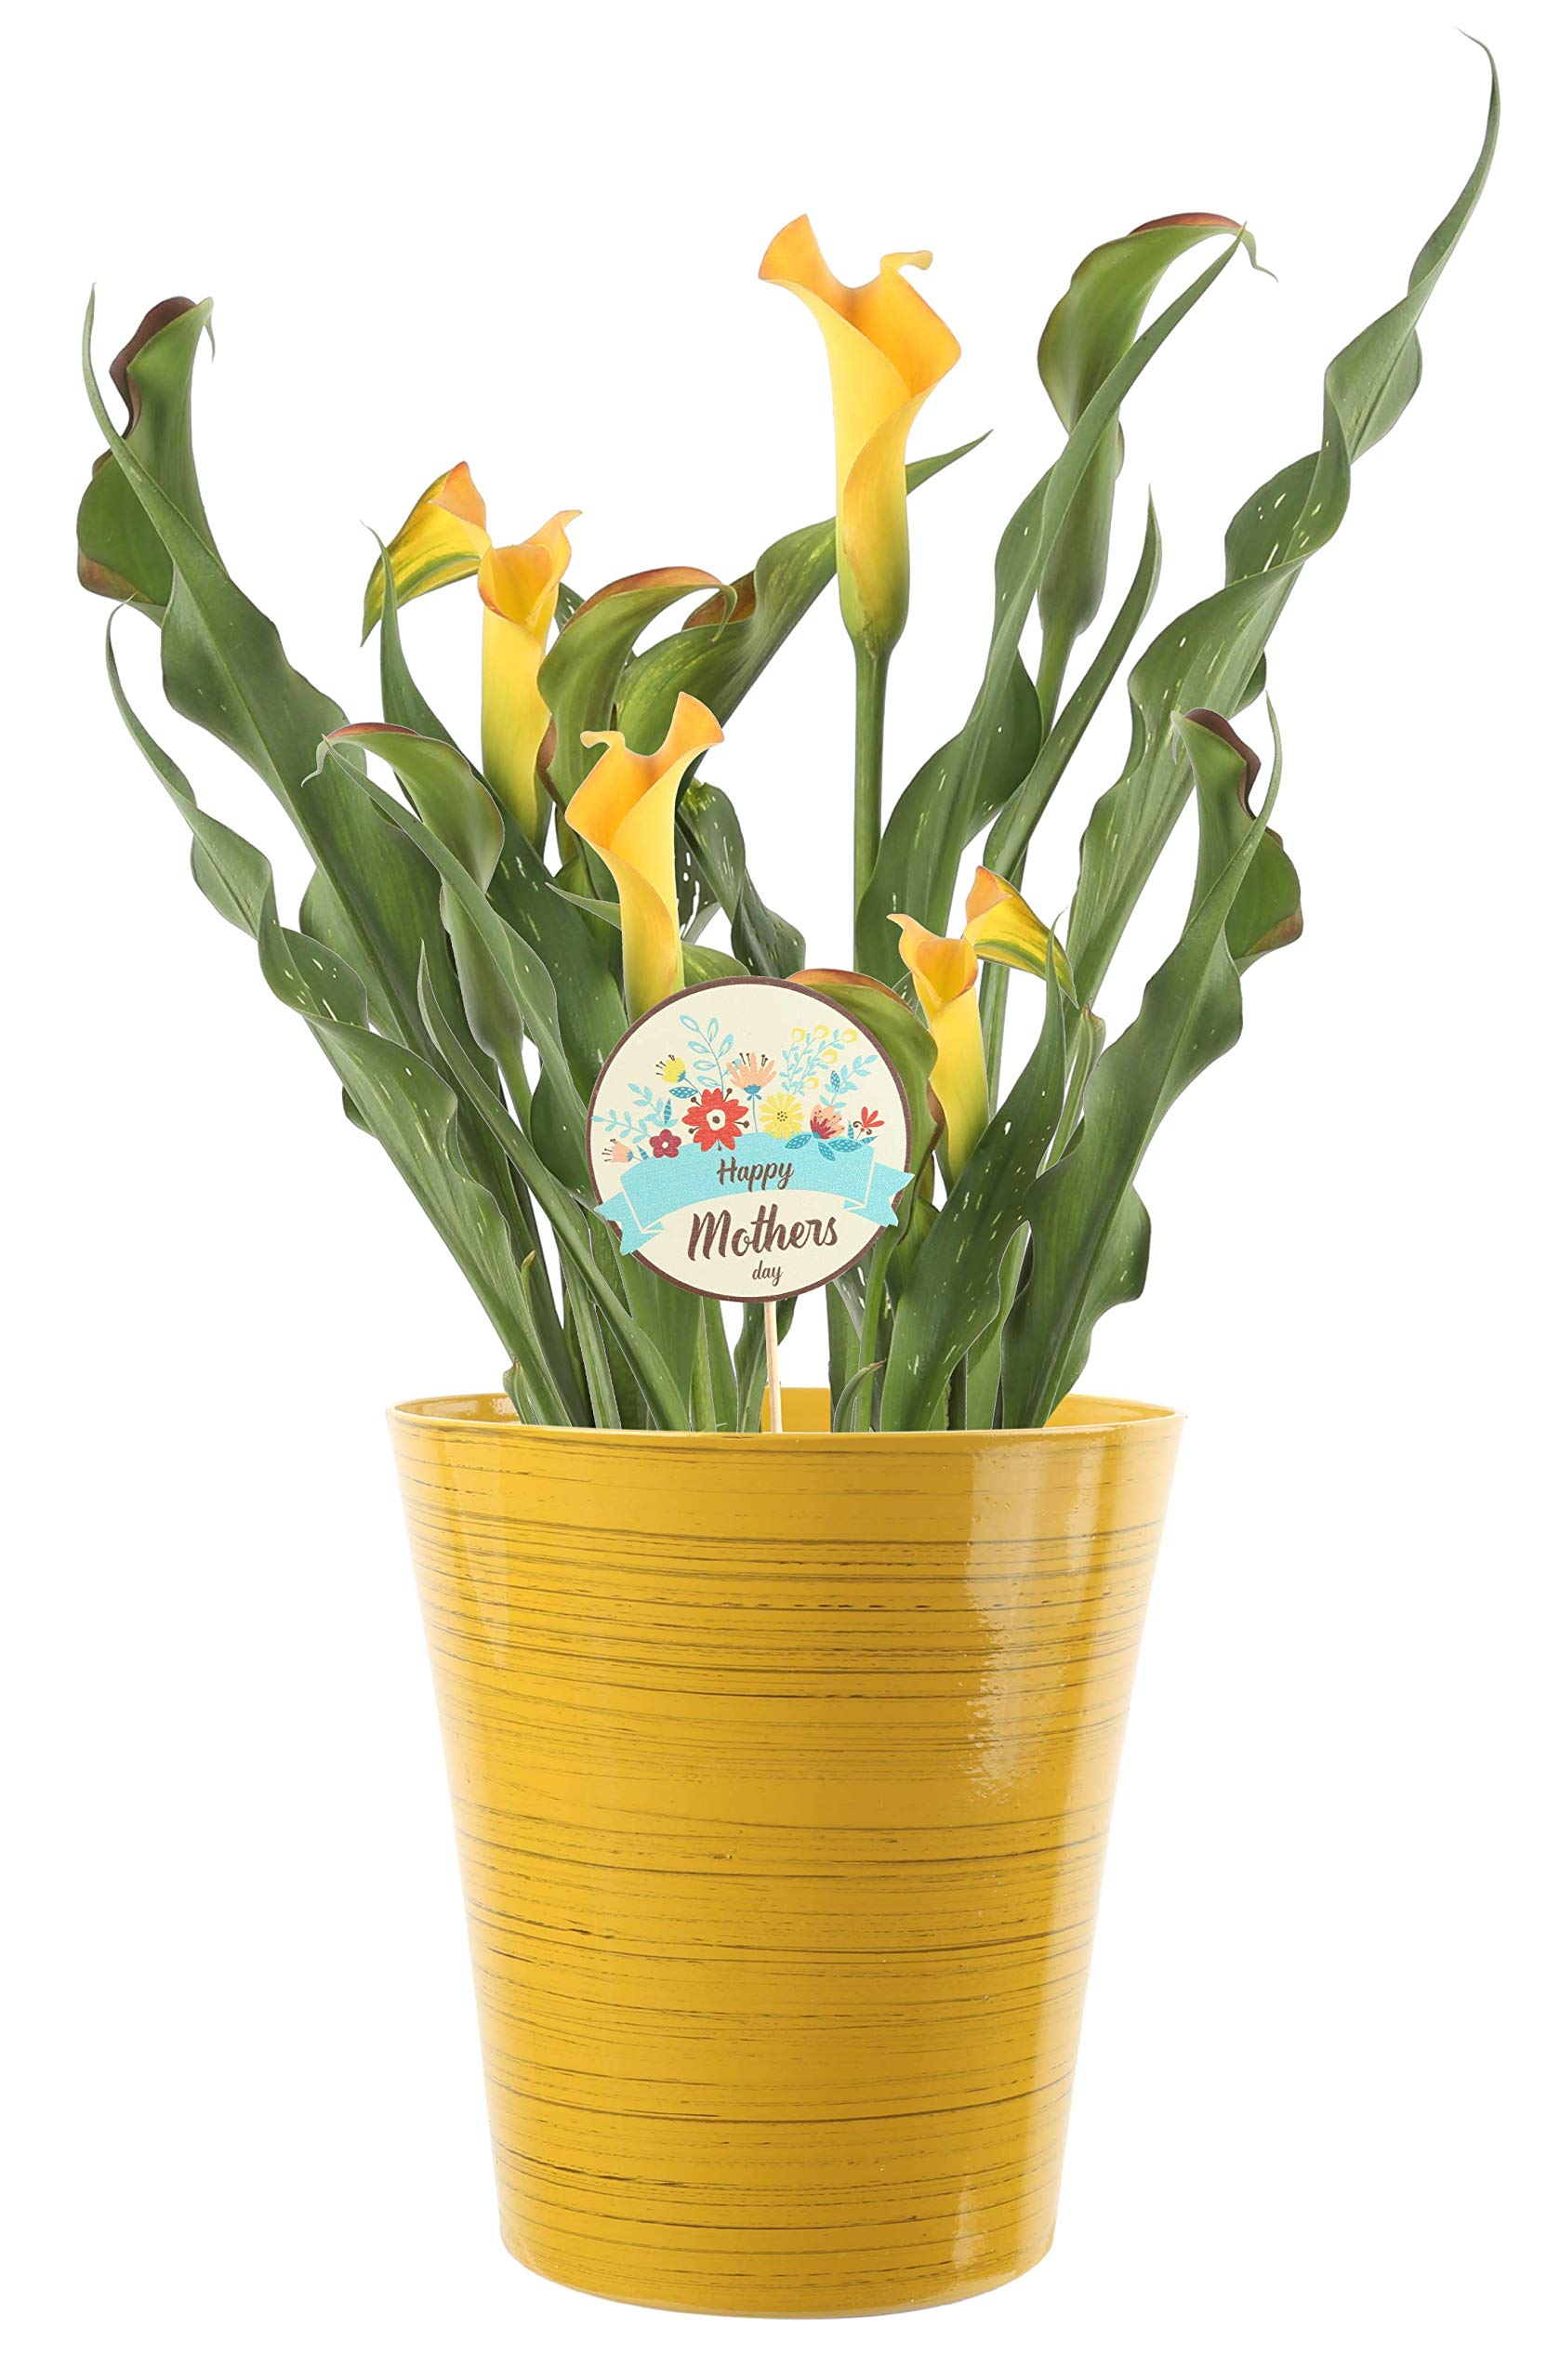 Costa Farms Calla Lily Live Outdoor Plant 2.5 QT Decor Pot, Grower's Choice Variety, Excellent Gift